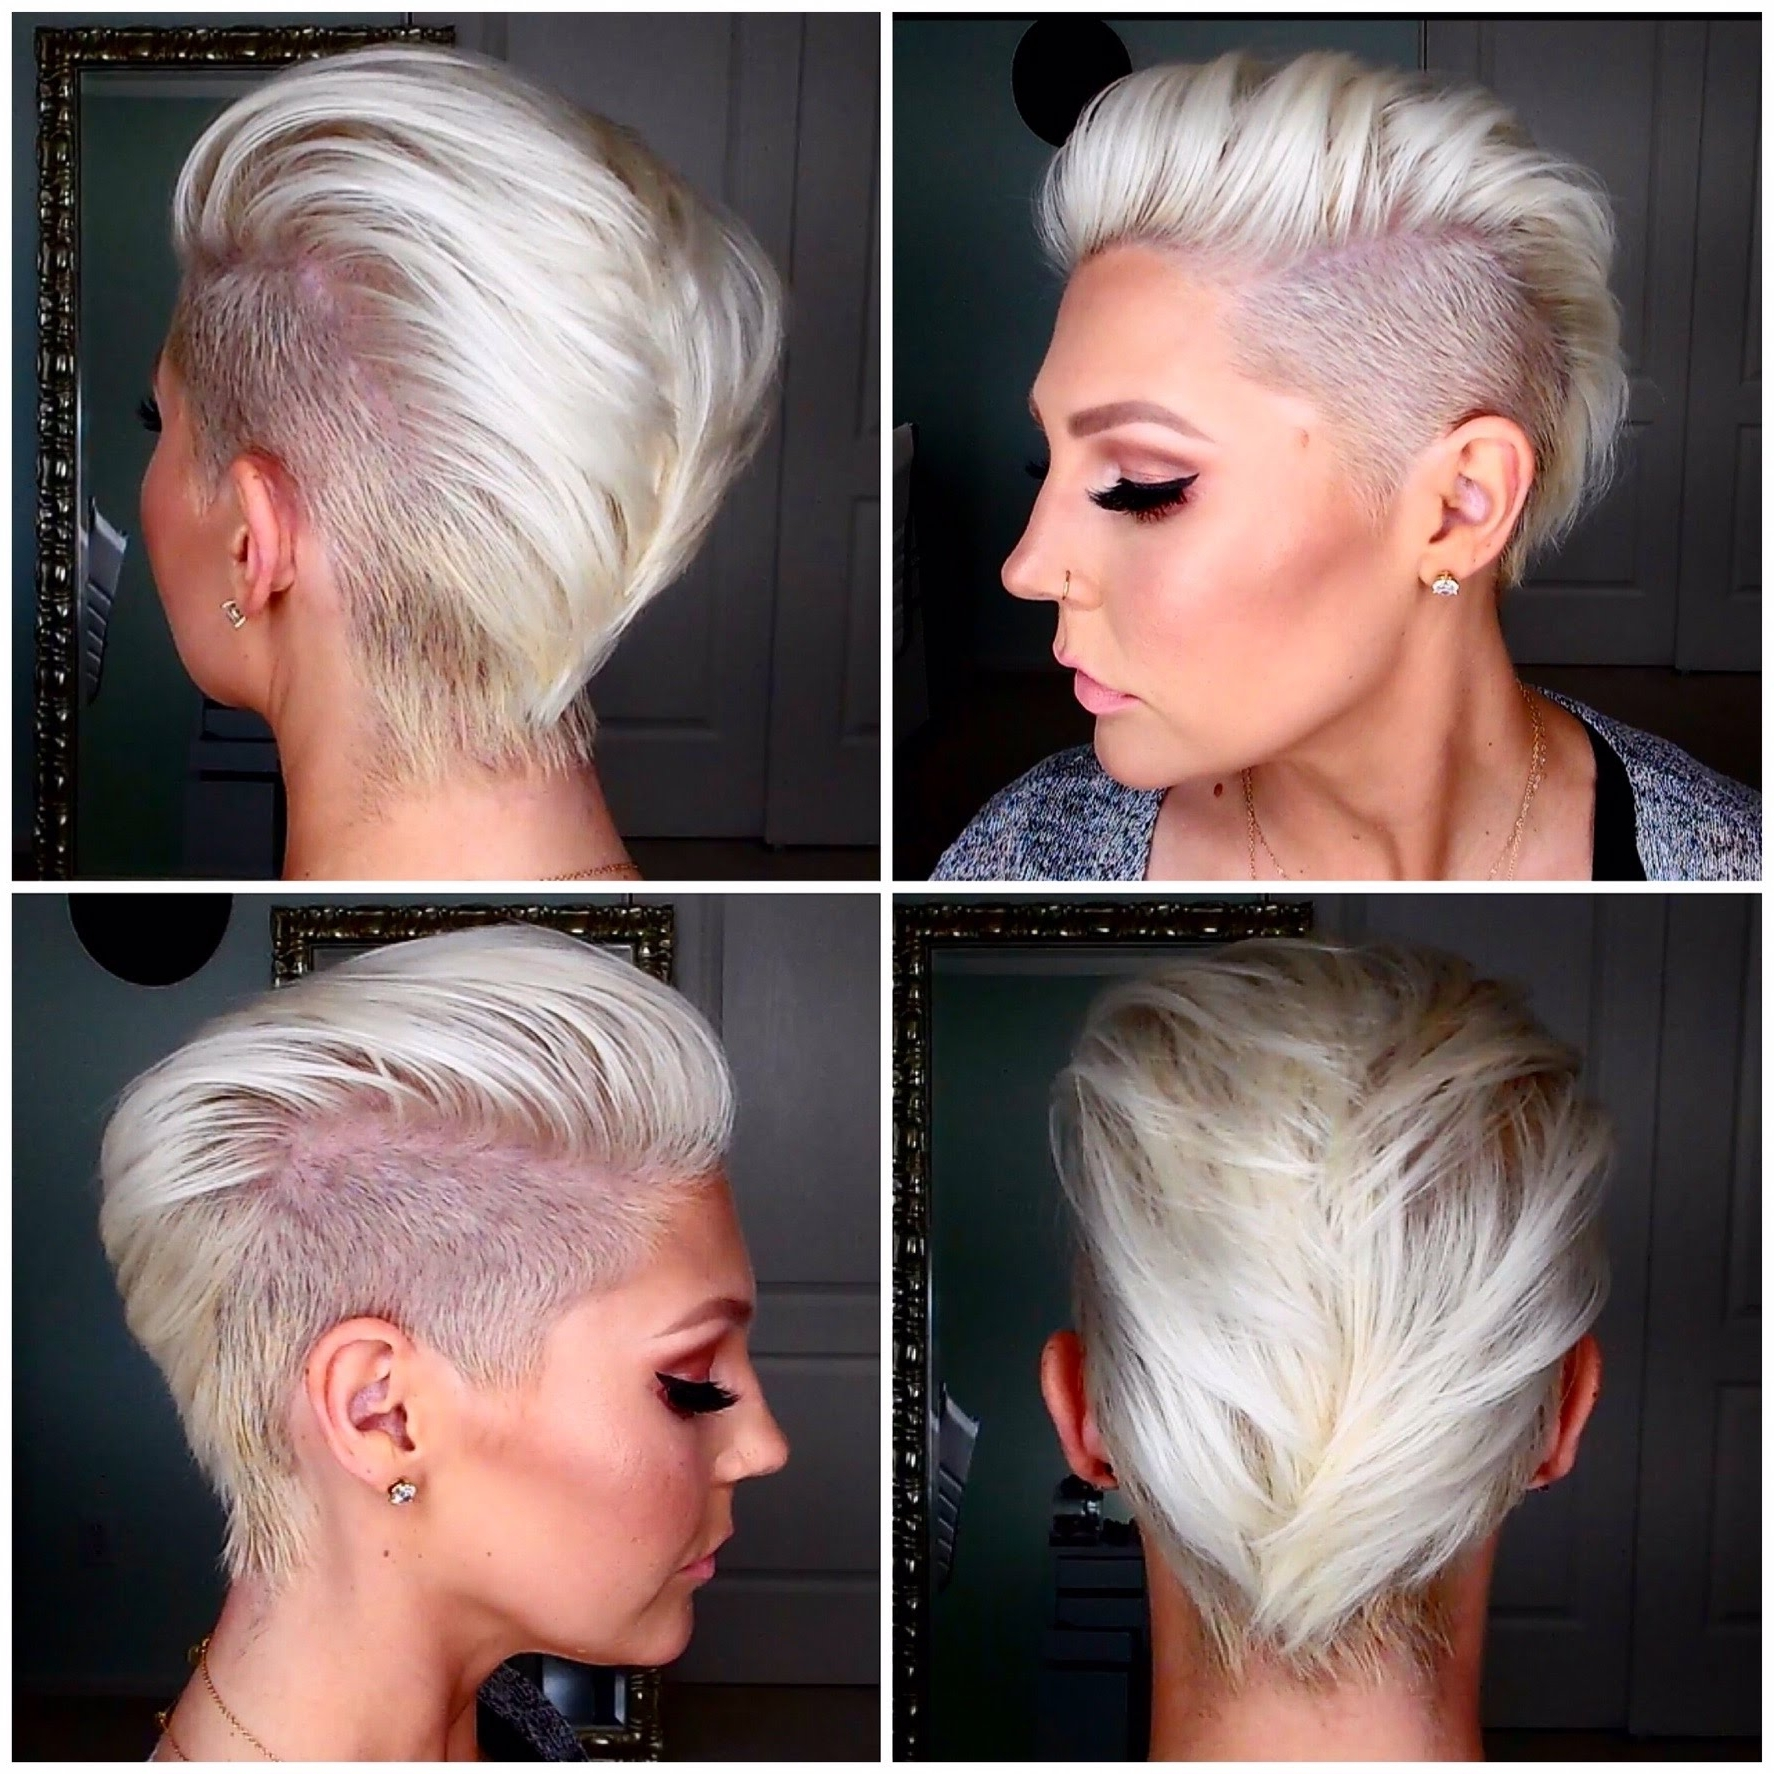 How To Get & Maintain Short Platinum Blonde Hair – Youtube For Most Recent Undercut Blonde Pixie Hairstyles With Dark Roots (View 13 of 20)